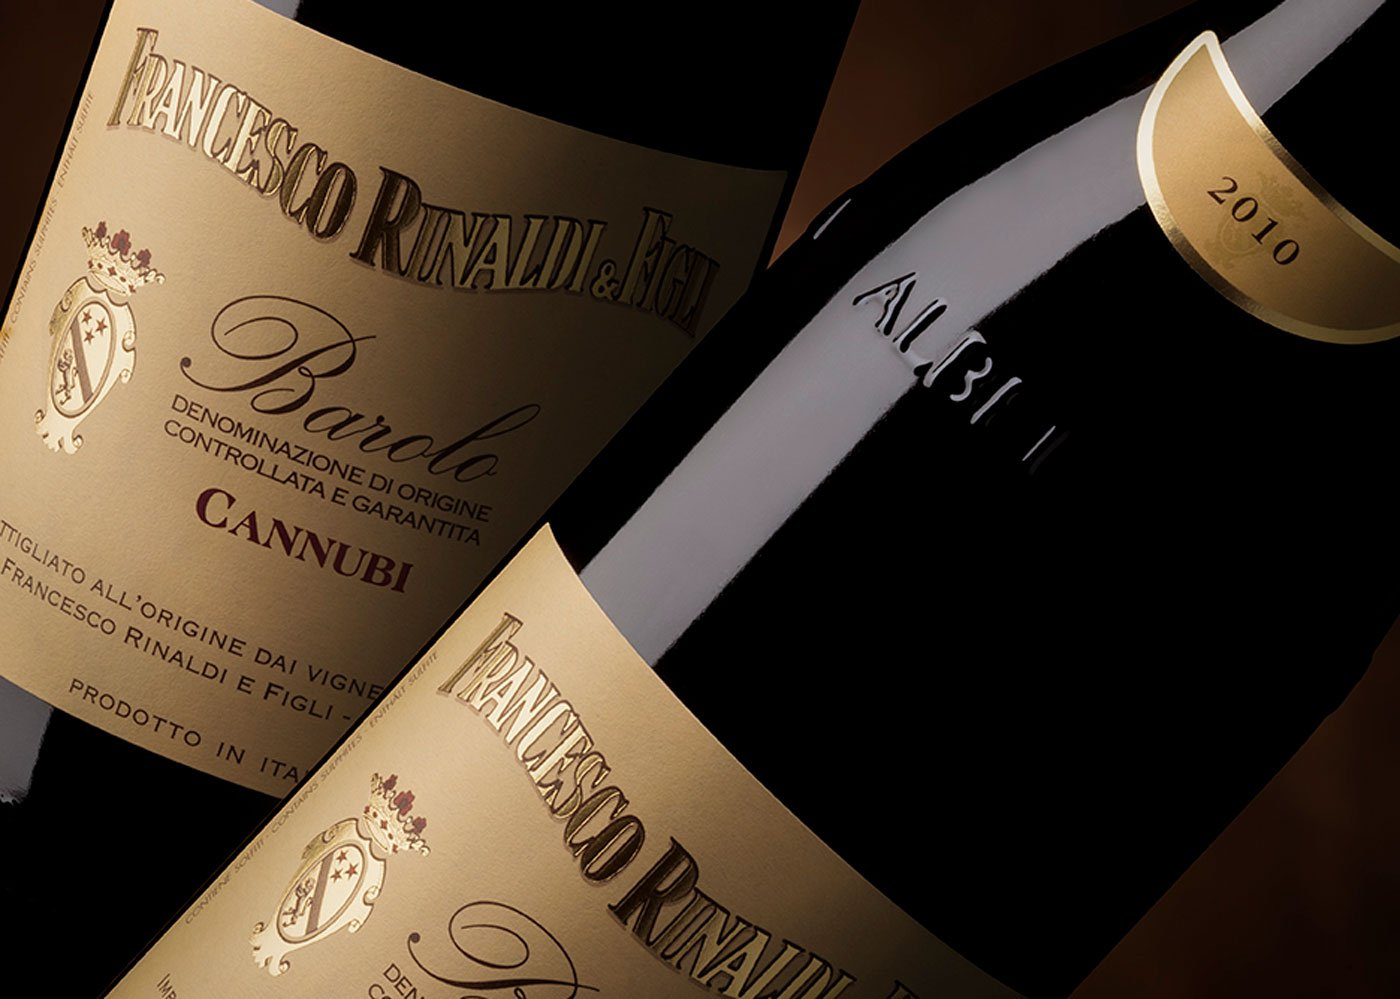 Our most awarded type of wine: Barolo Cannubi and Barolo Brunate